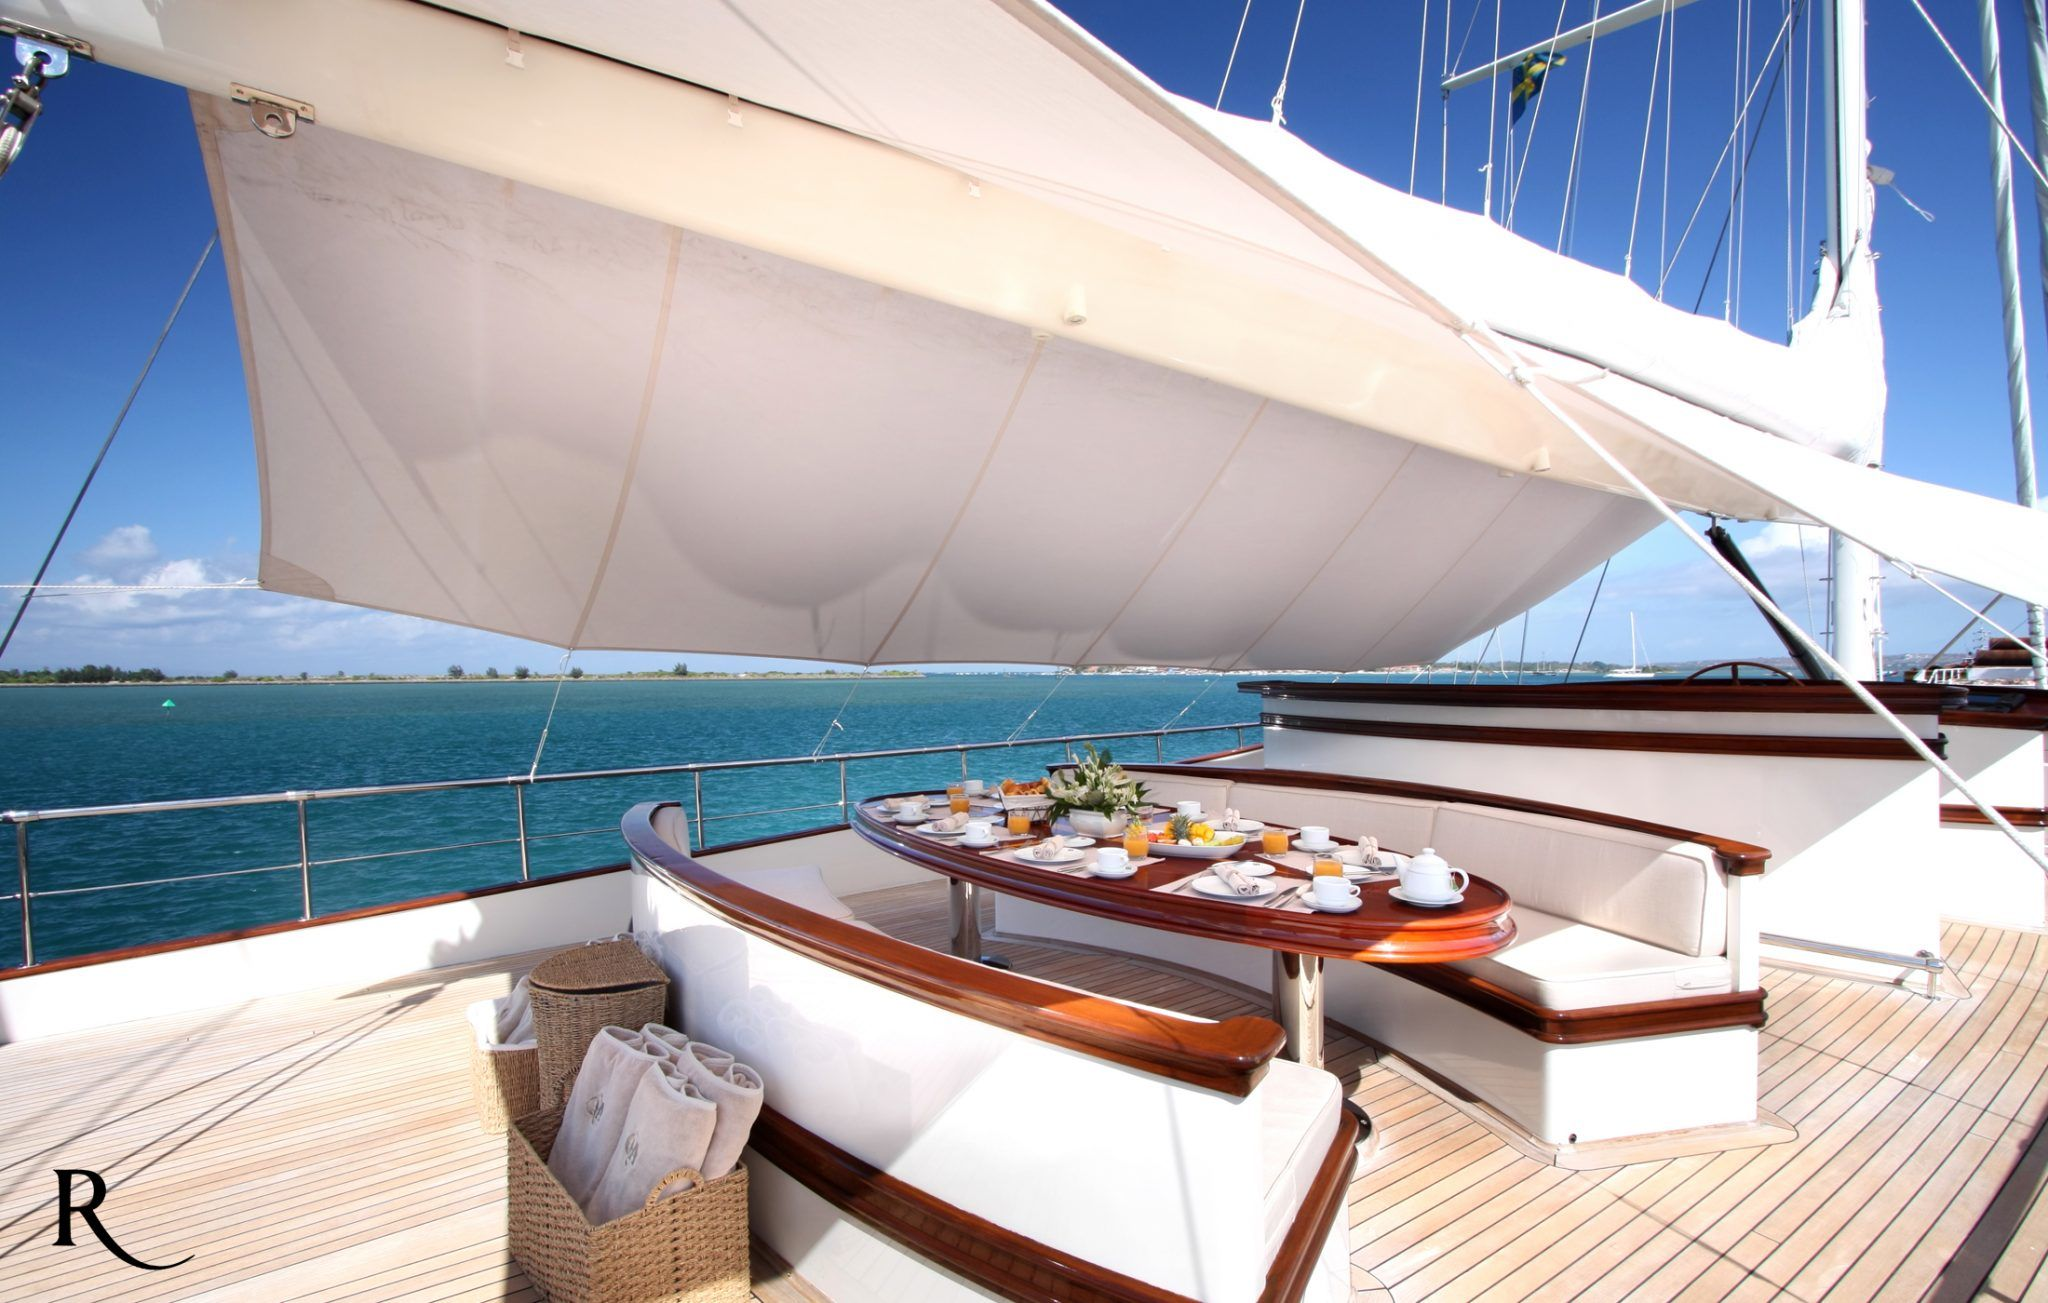 S/Y RIANA Yacht for Charter outdoor breakfast